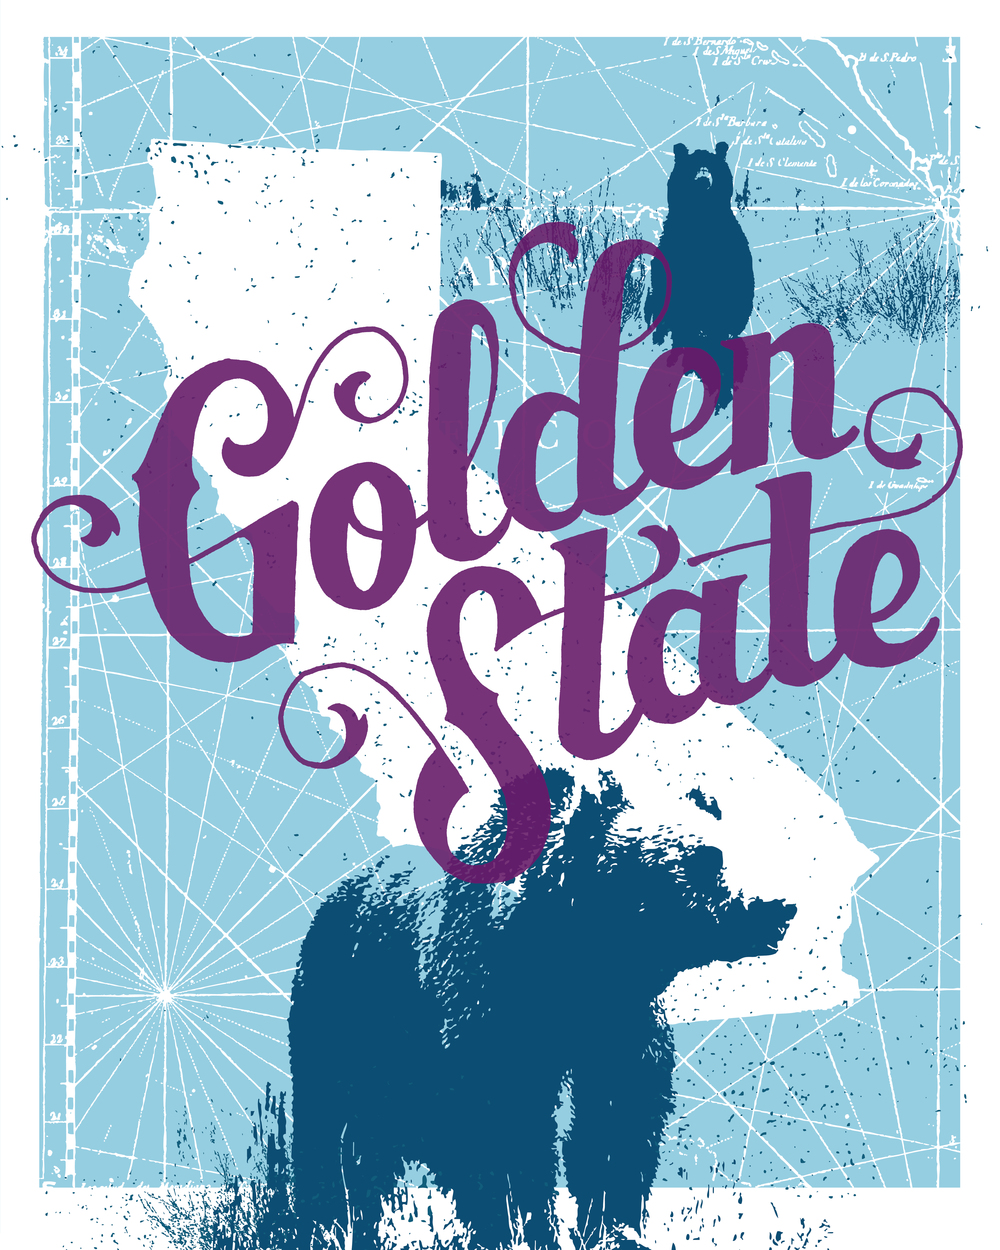 GoldenState_poster-02.jpg